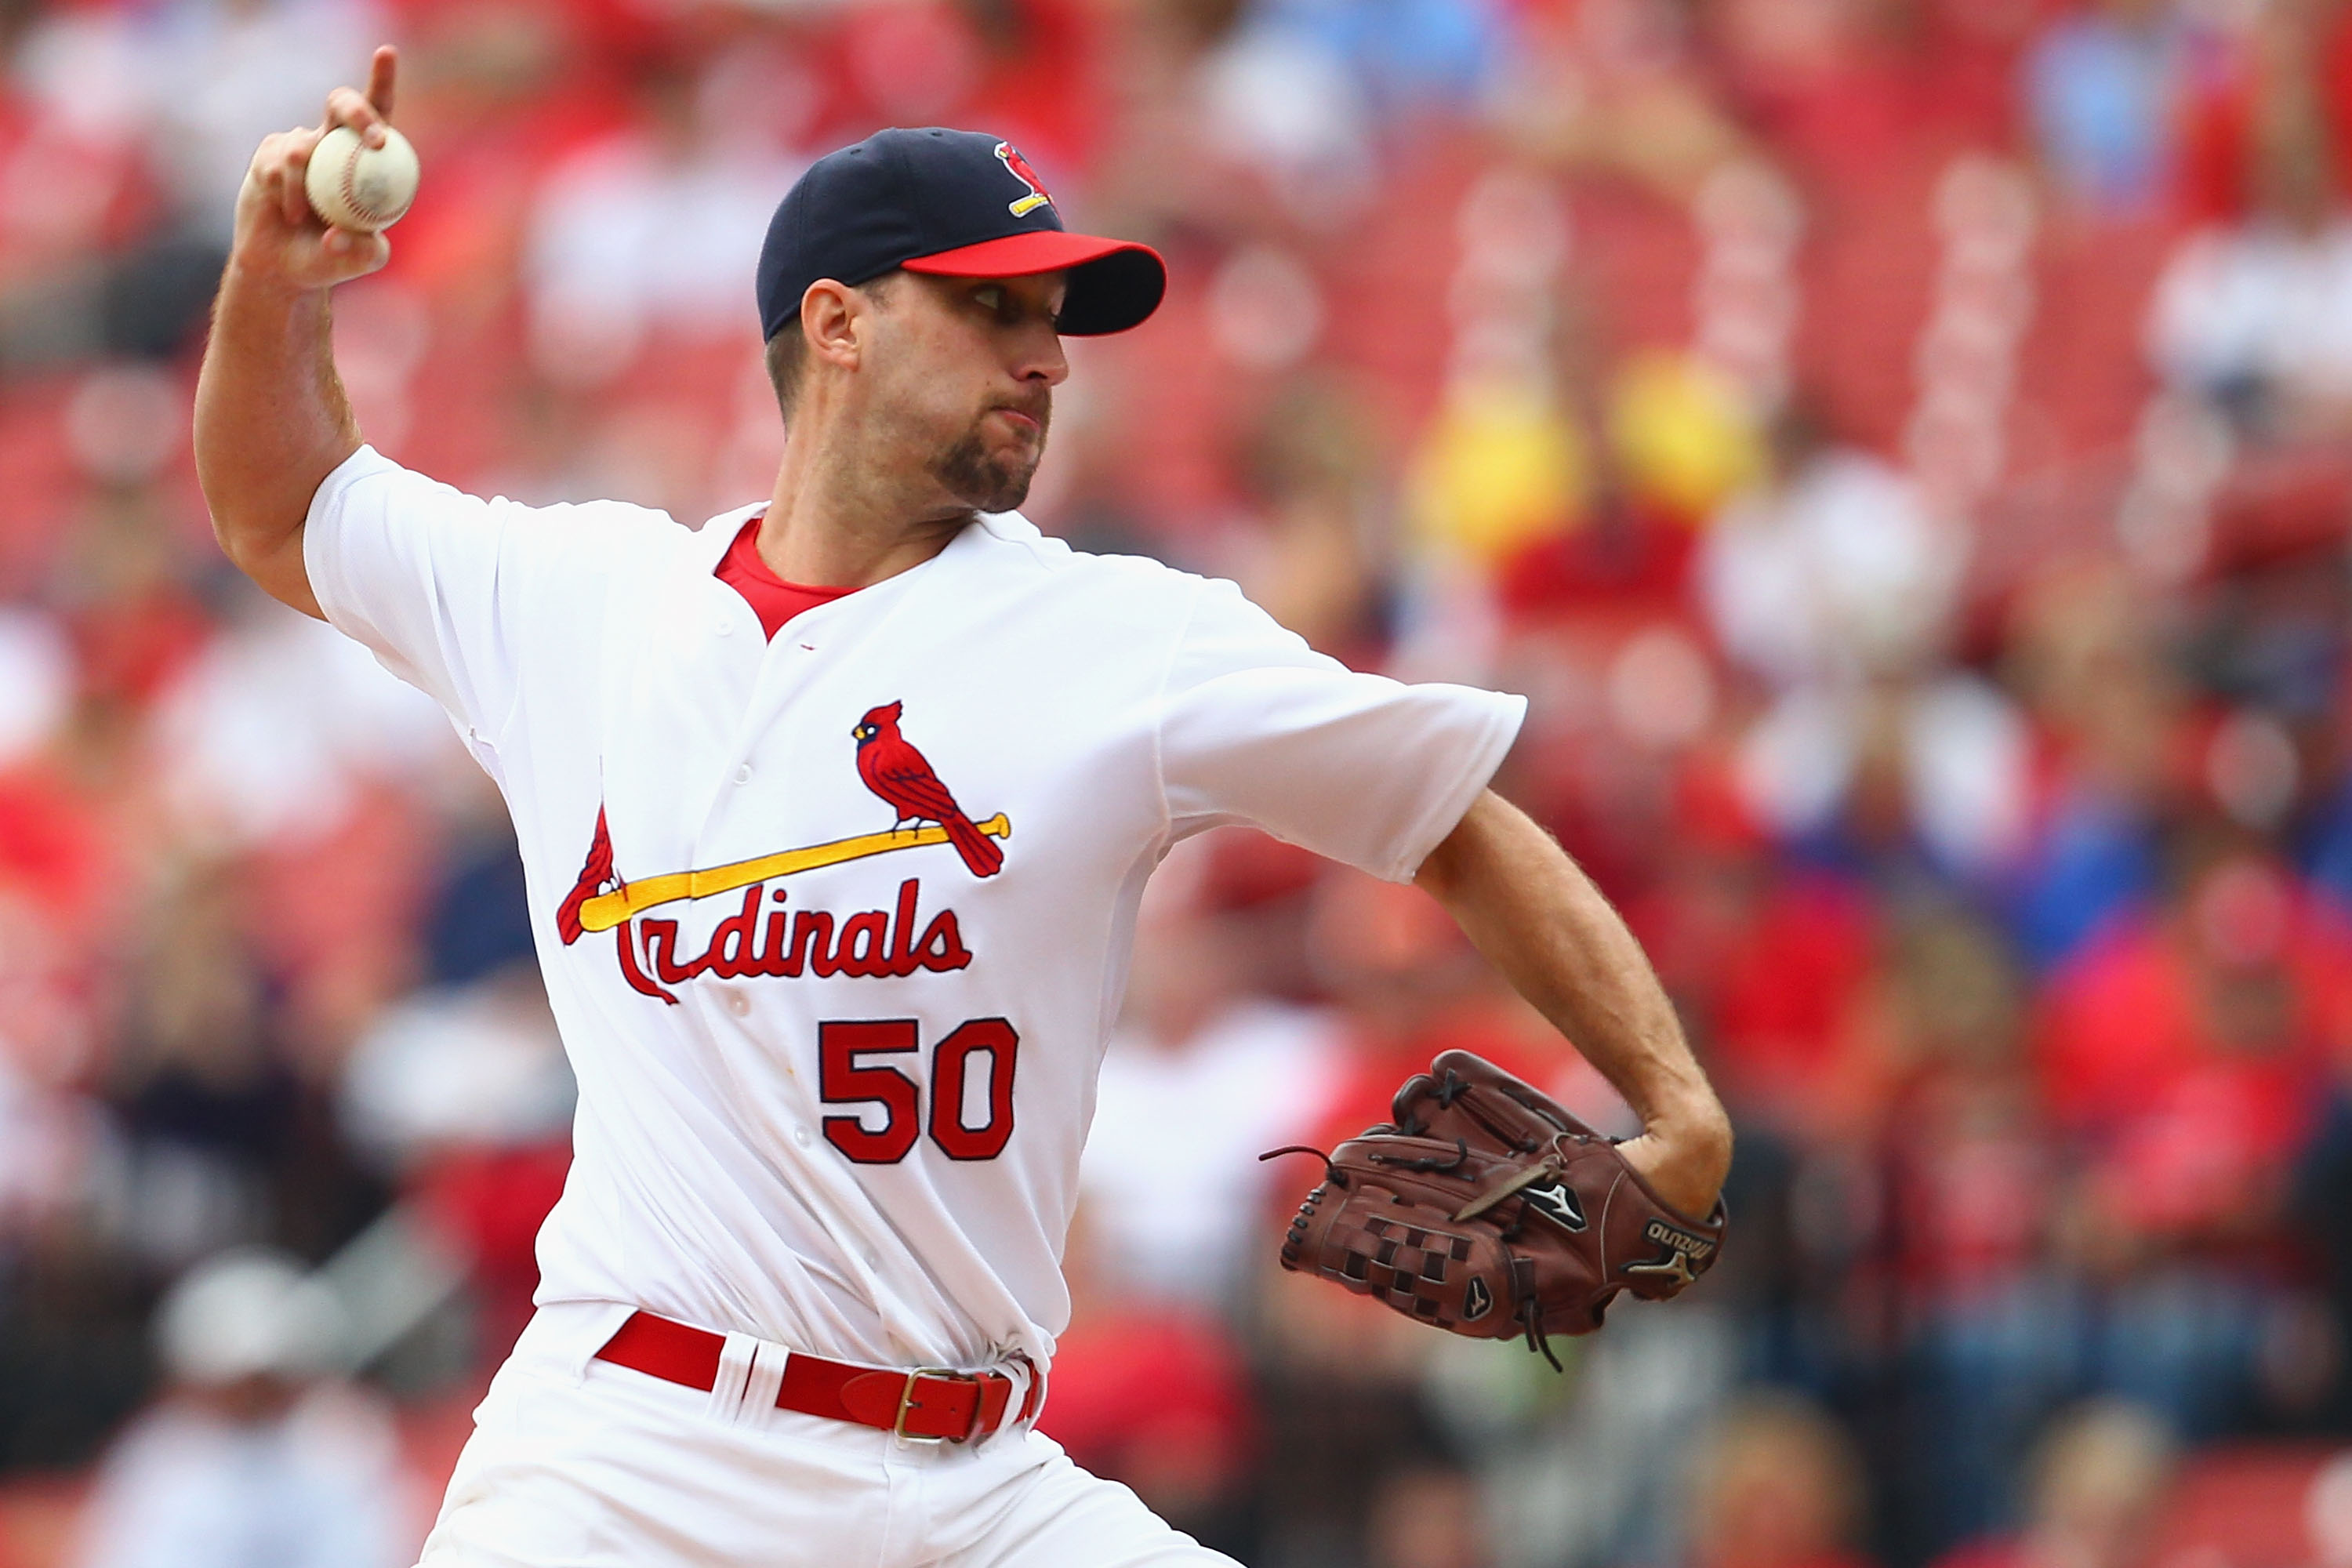 ST. LOUIS - SEPTEMBER 19: Starter Adam Wainwright #50 of the St. Louis Cardinals pitches against the San Diego Padres at Busch Stadium on September 19, 2010 in St. Louis, Missouri.  The Cardinals beat the Padres 4-1.  (Photo by Dilip Vishwanat/Getty Image